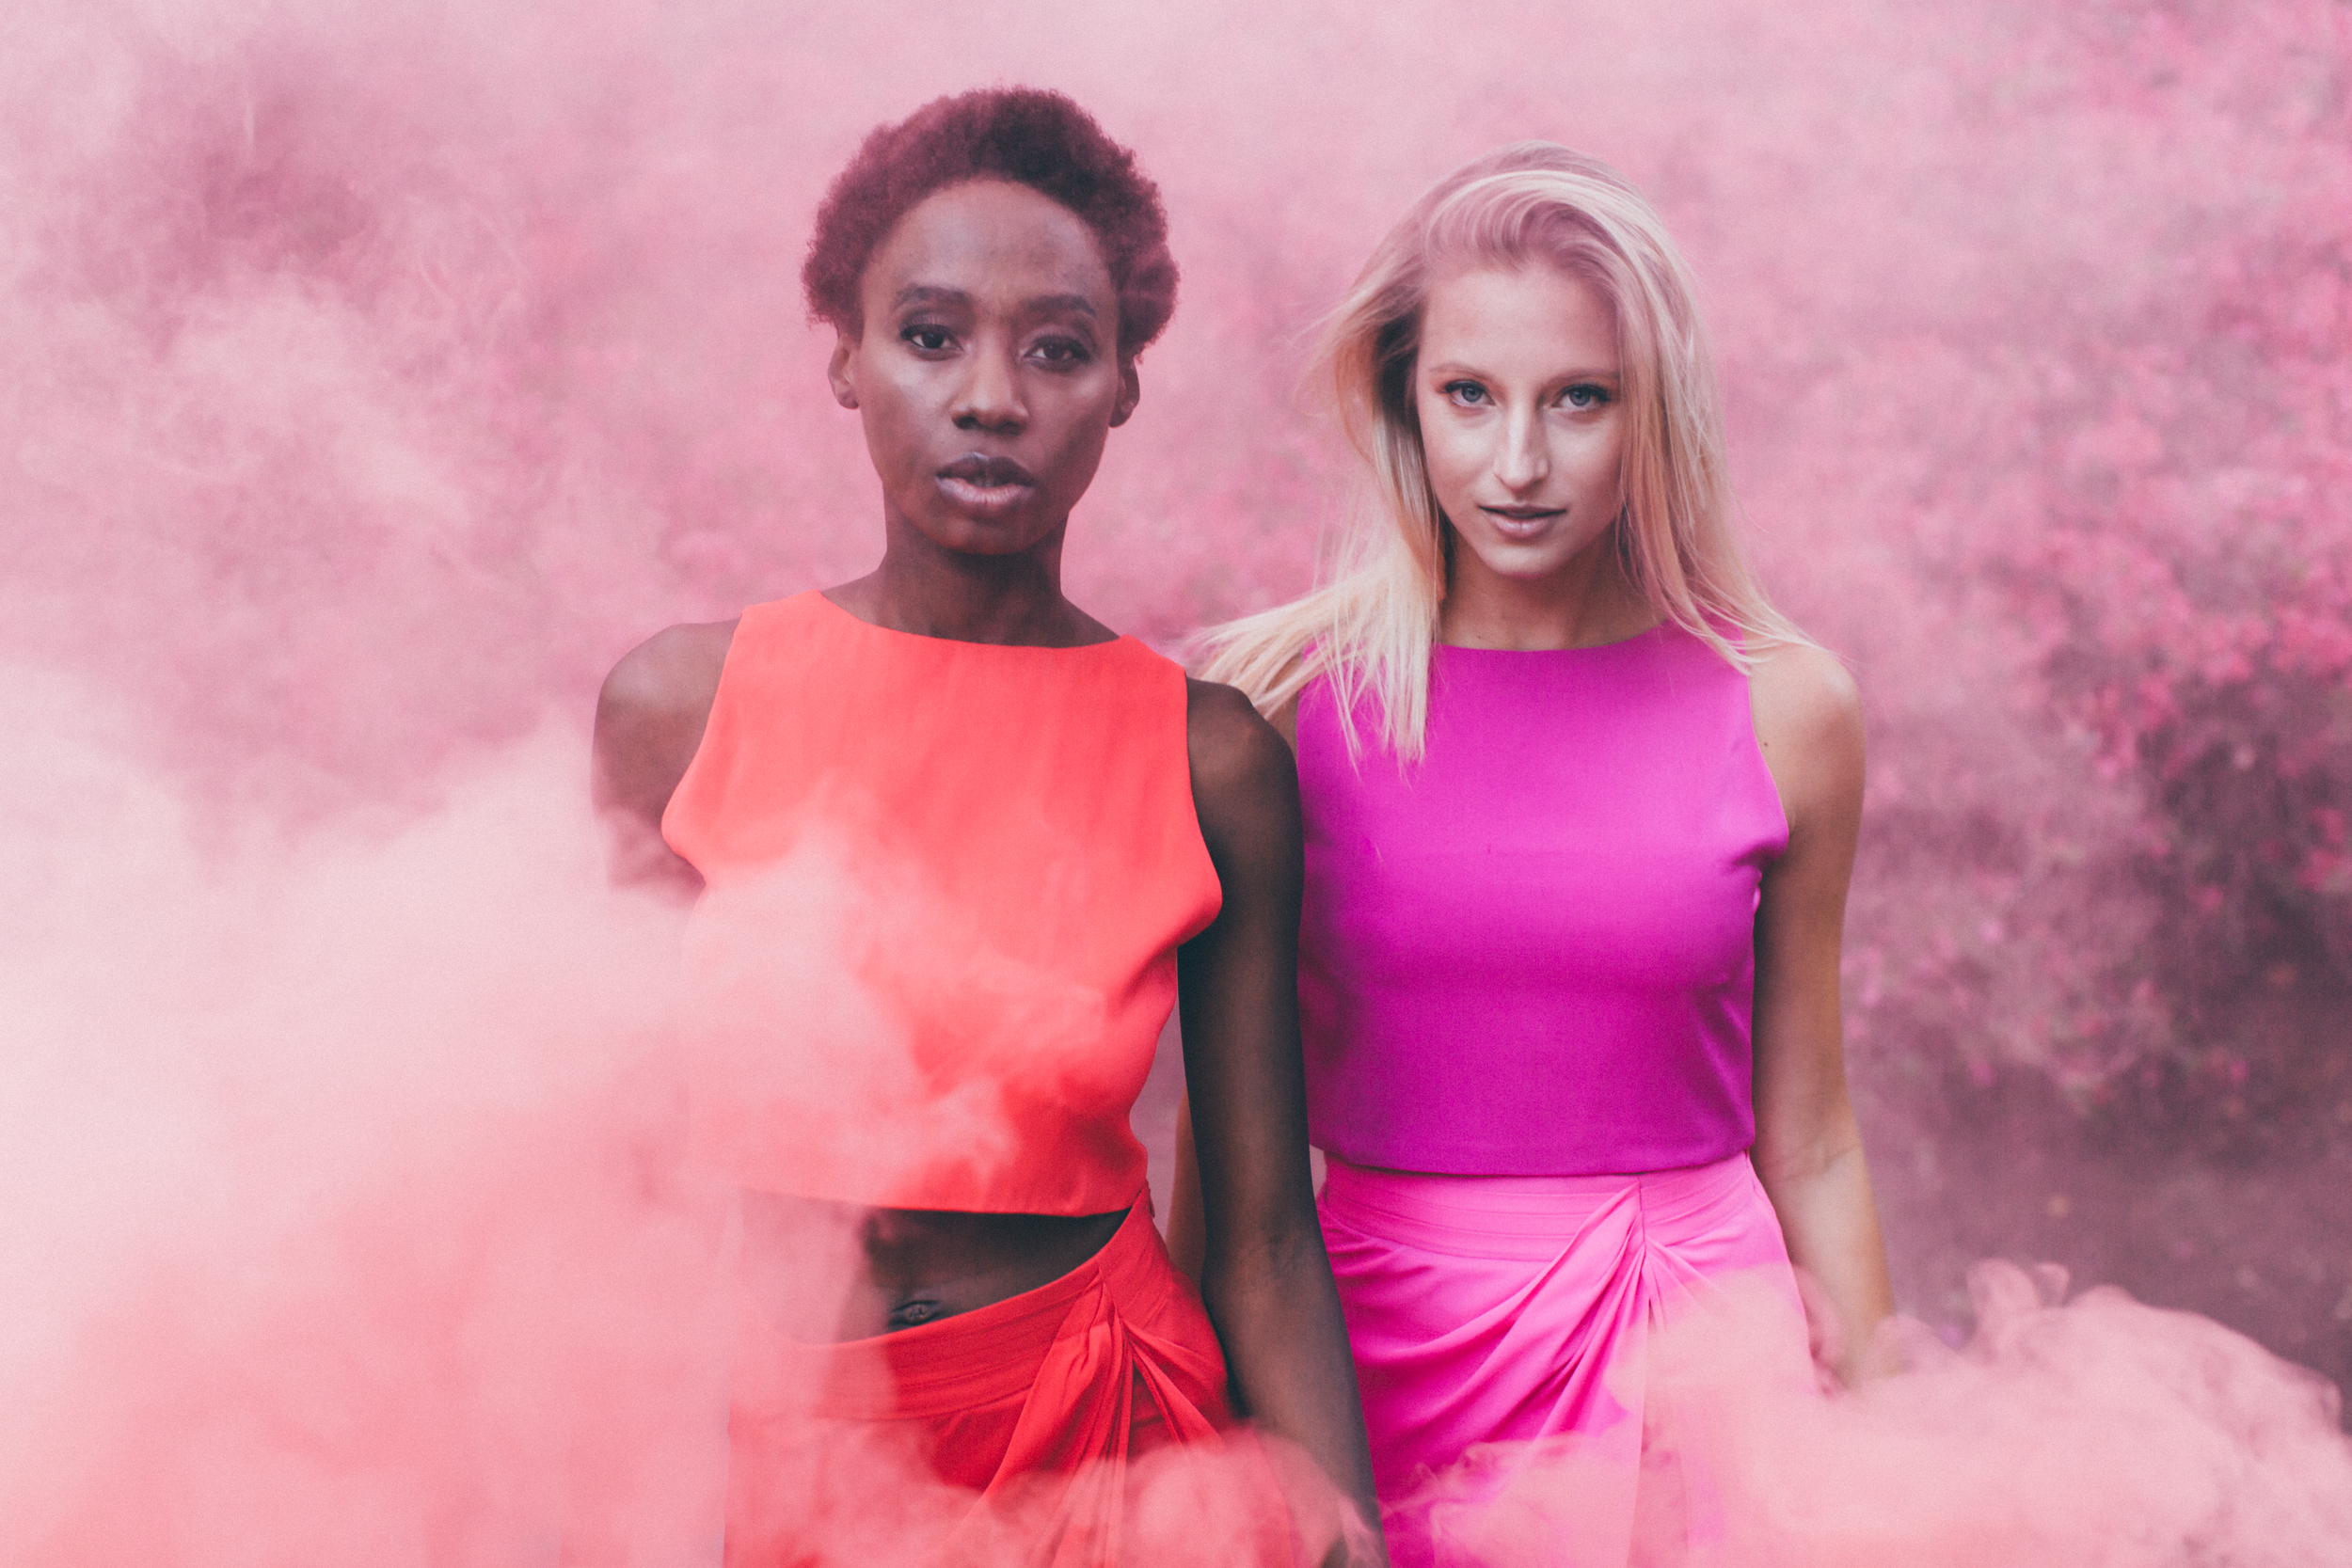 Los Angeles Pink Smoke Lifestyle Photoshoot by The Finches